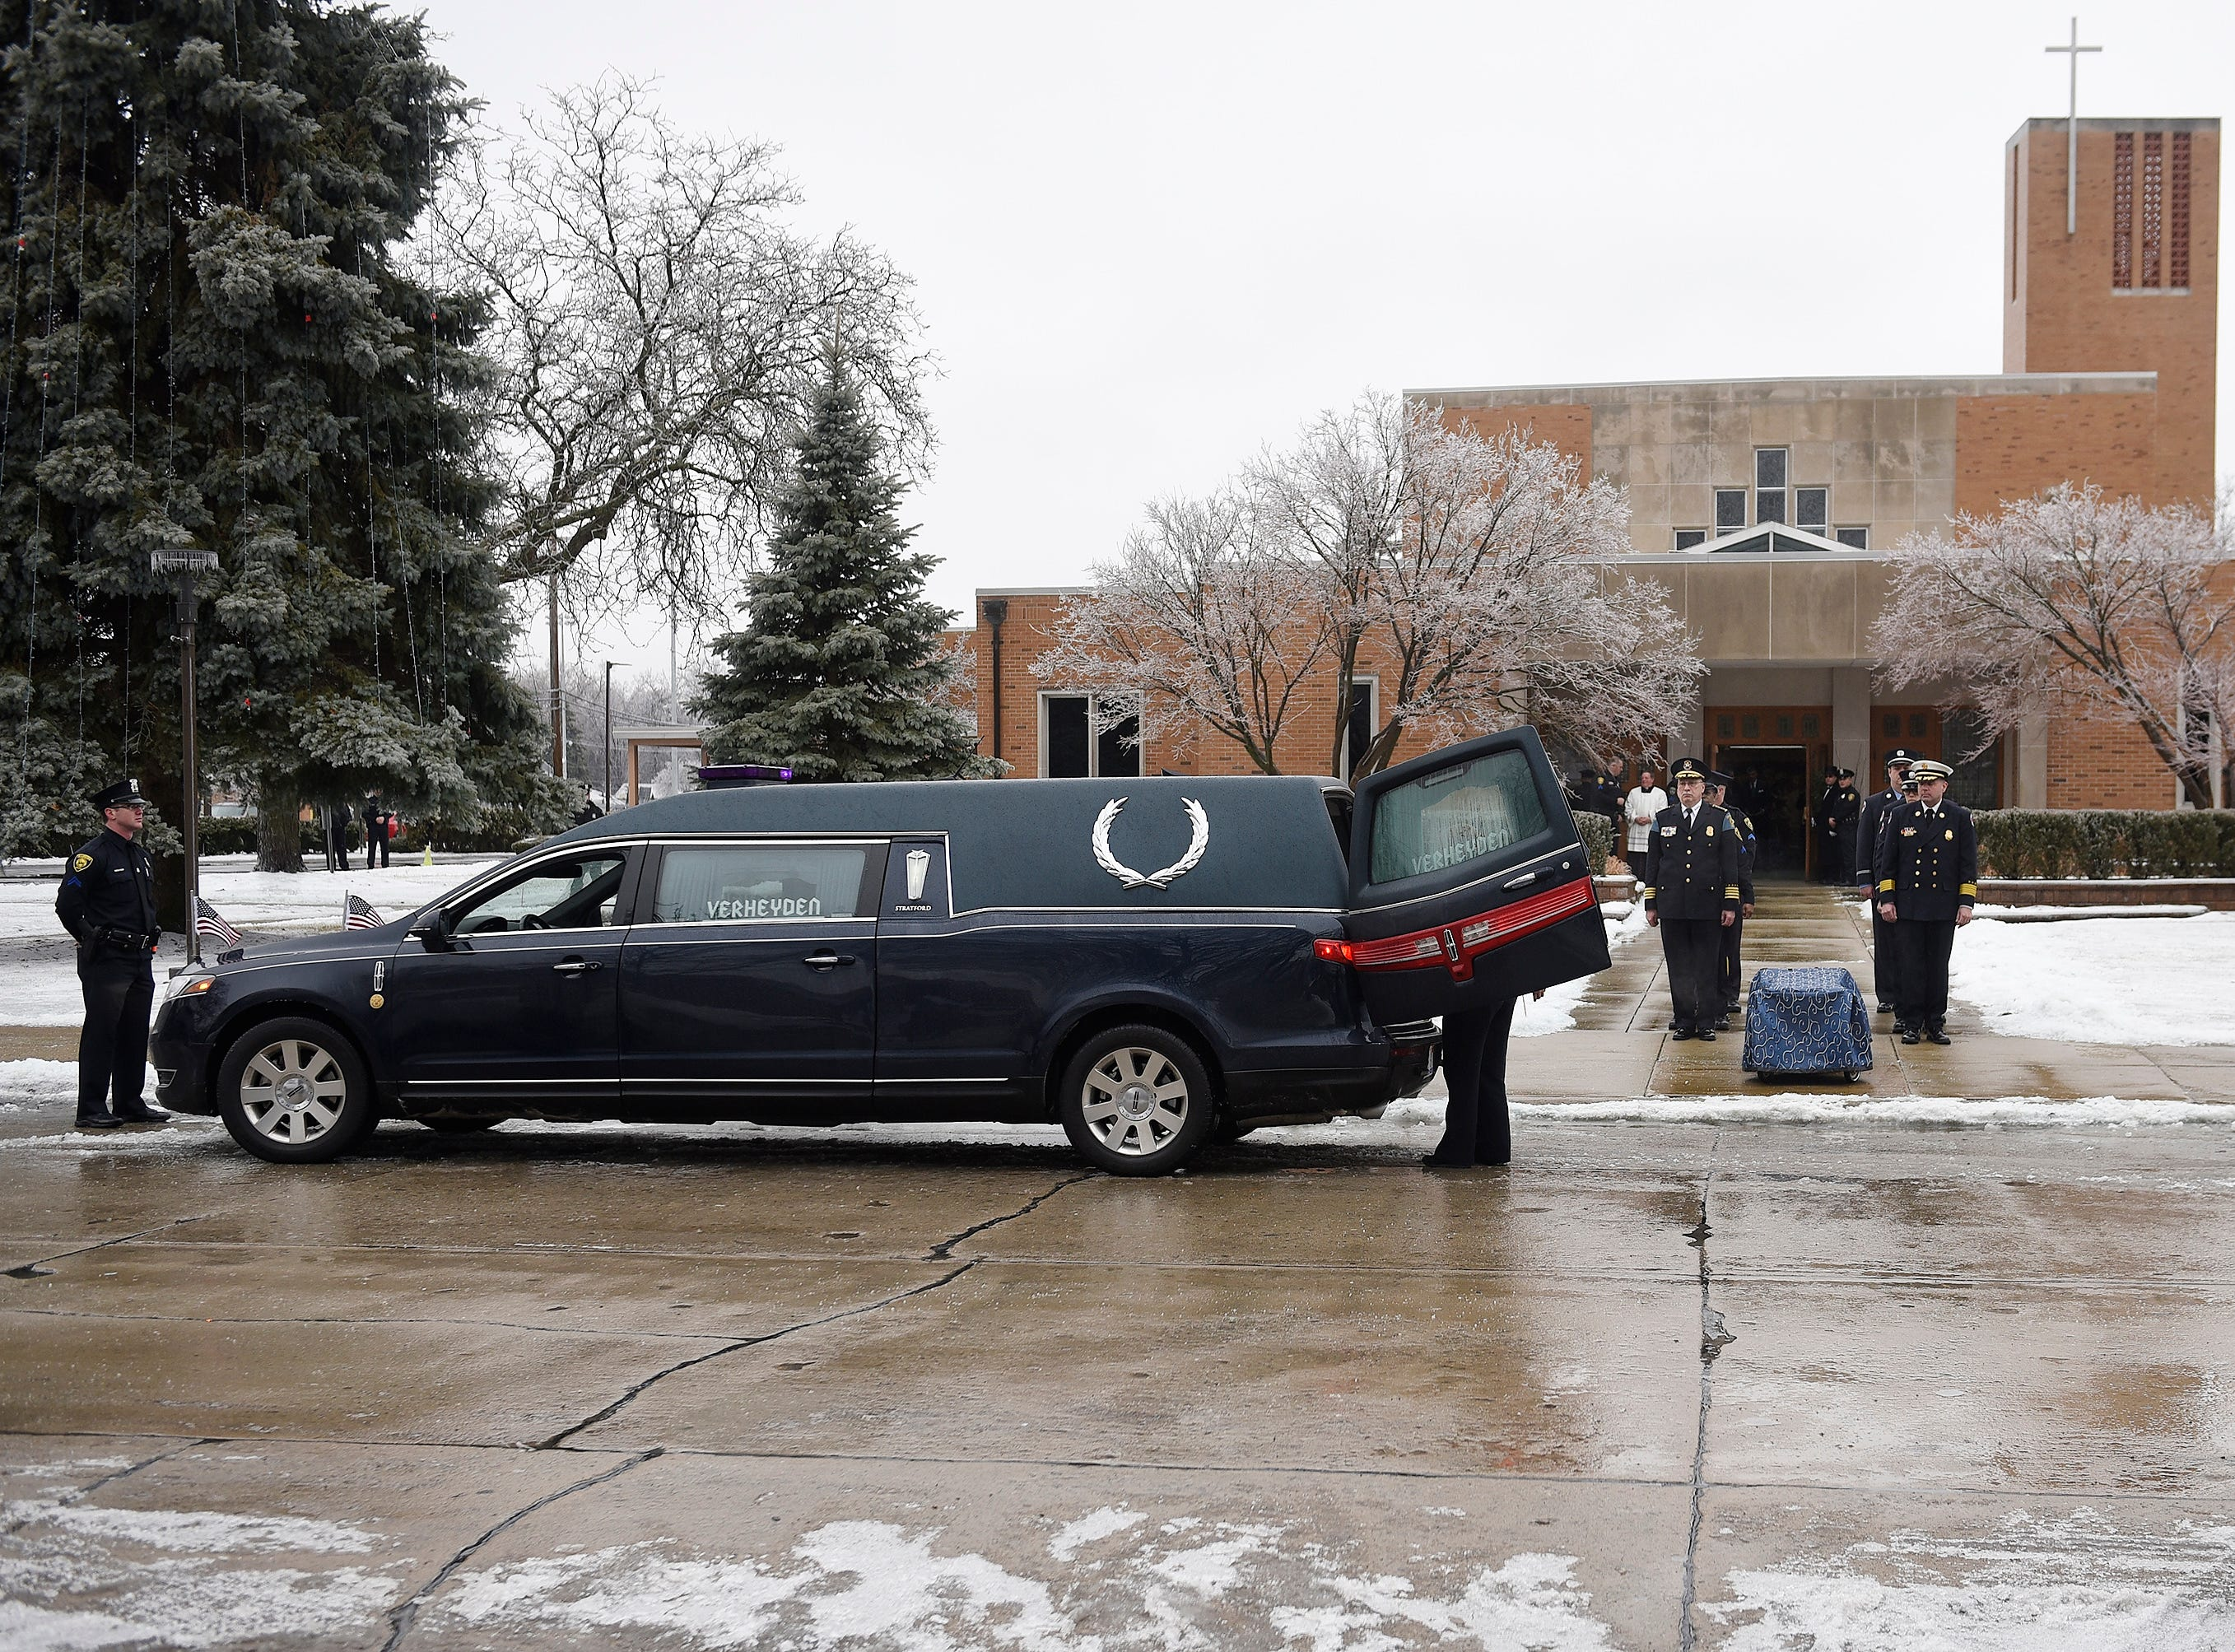 Pallbearers from the City of Dearborn first 